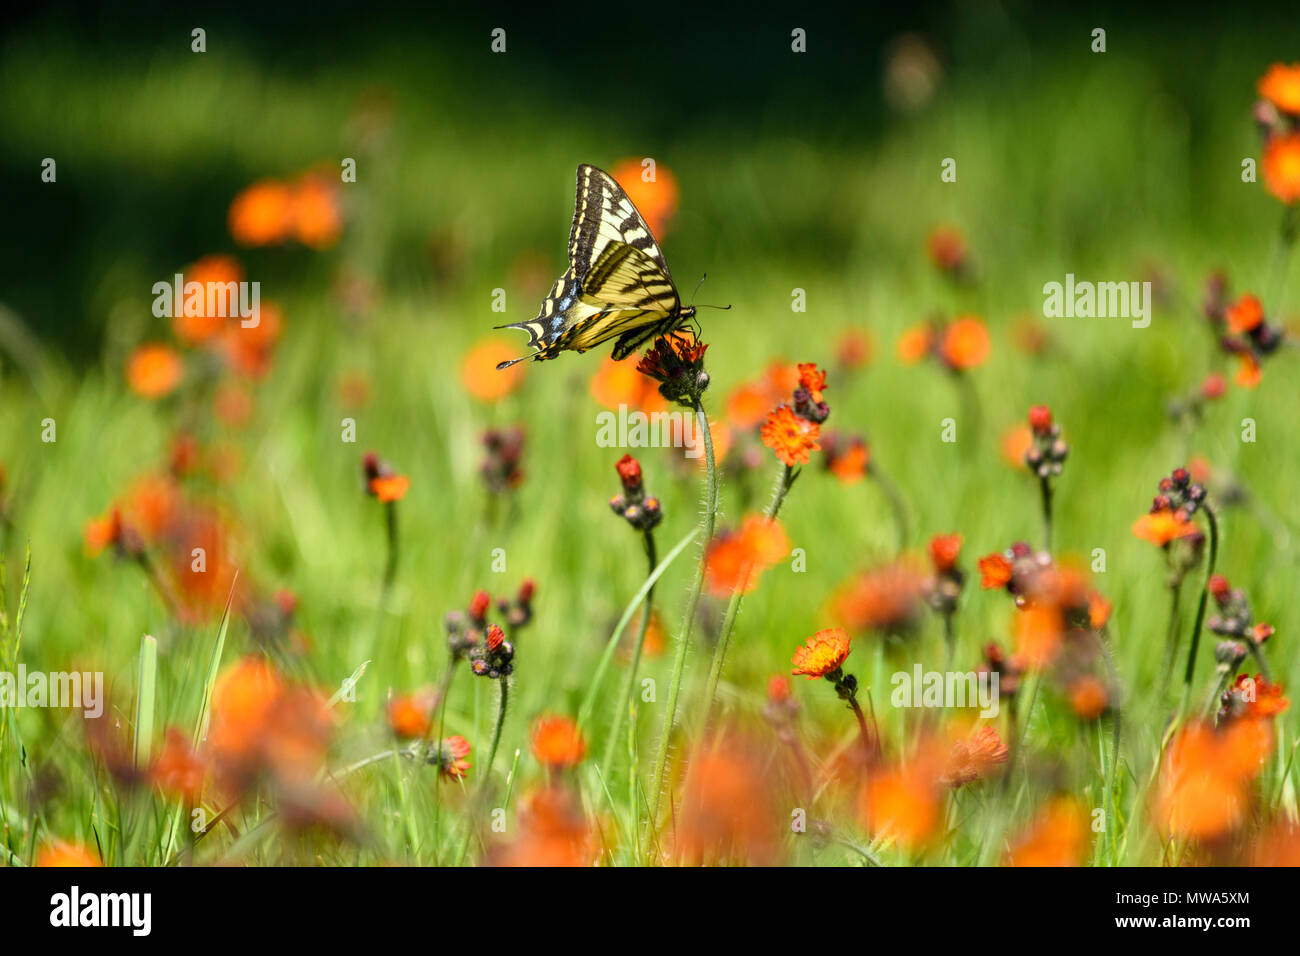 Canadian tiger swallowtail (Papilio canadensis) Nectaring orange hawkweed flowers, Greater Sudbury, Ontario, Canada - Stock Image